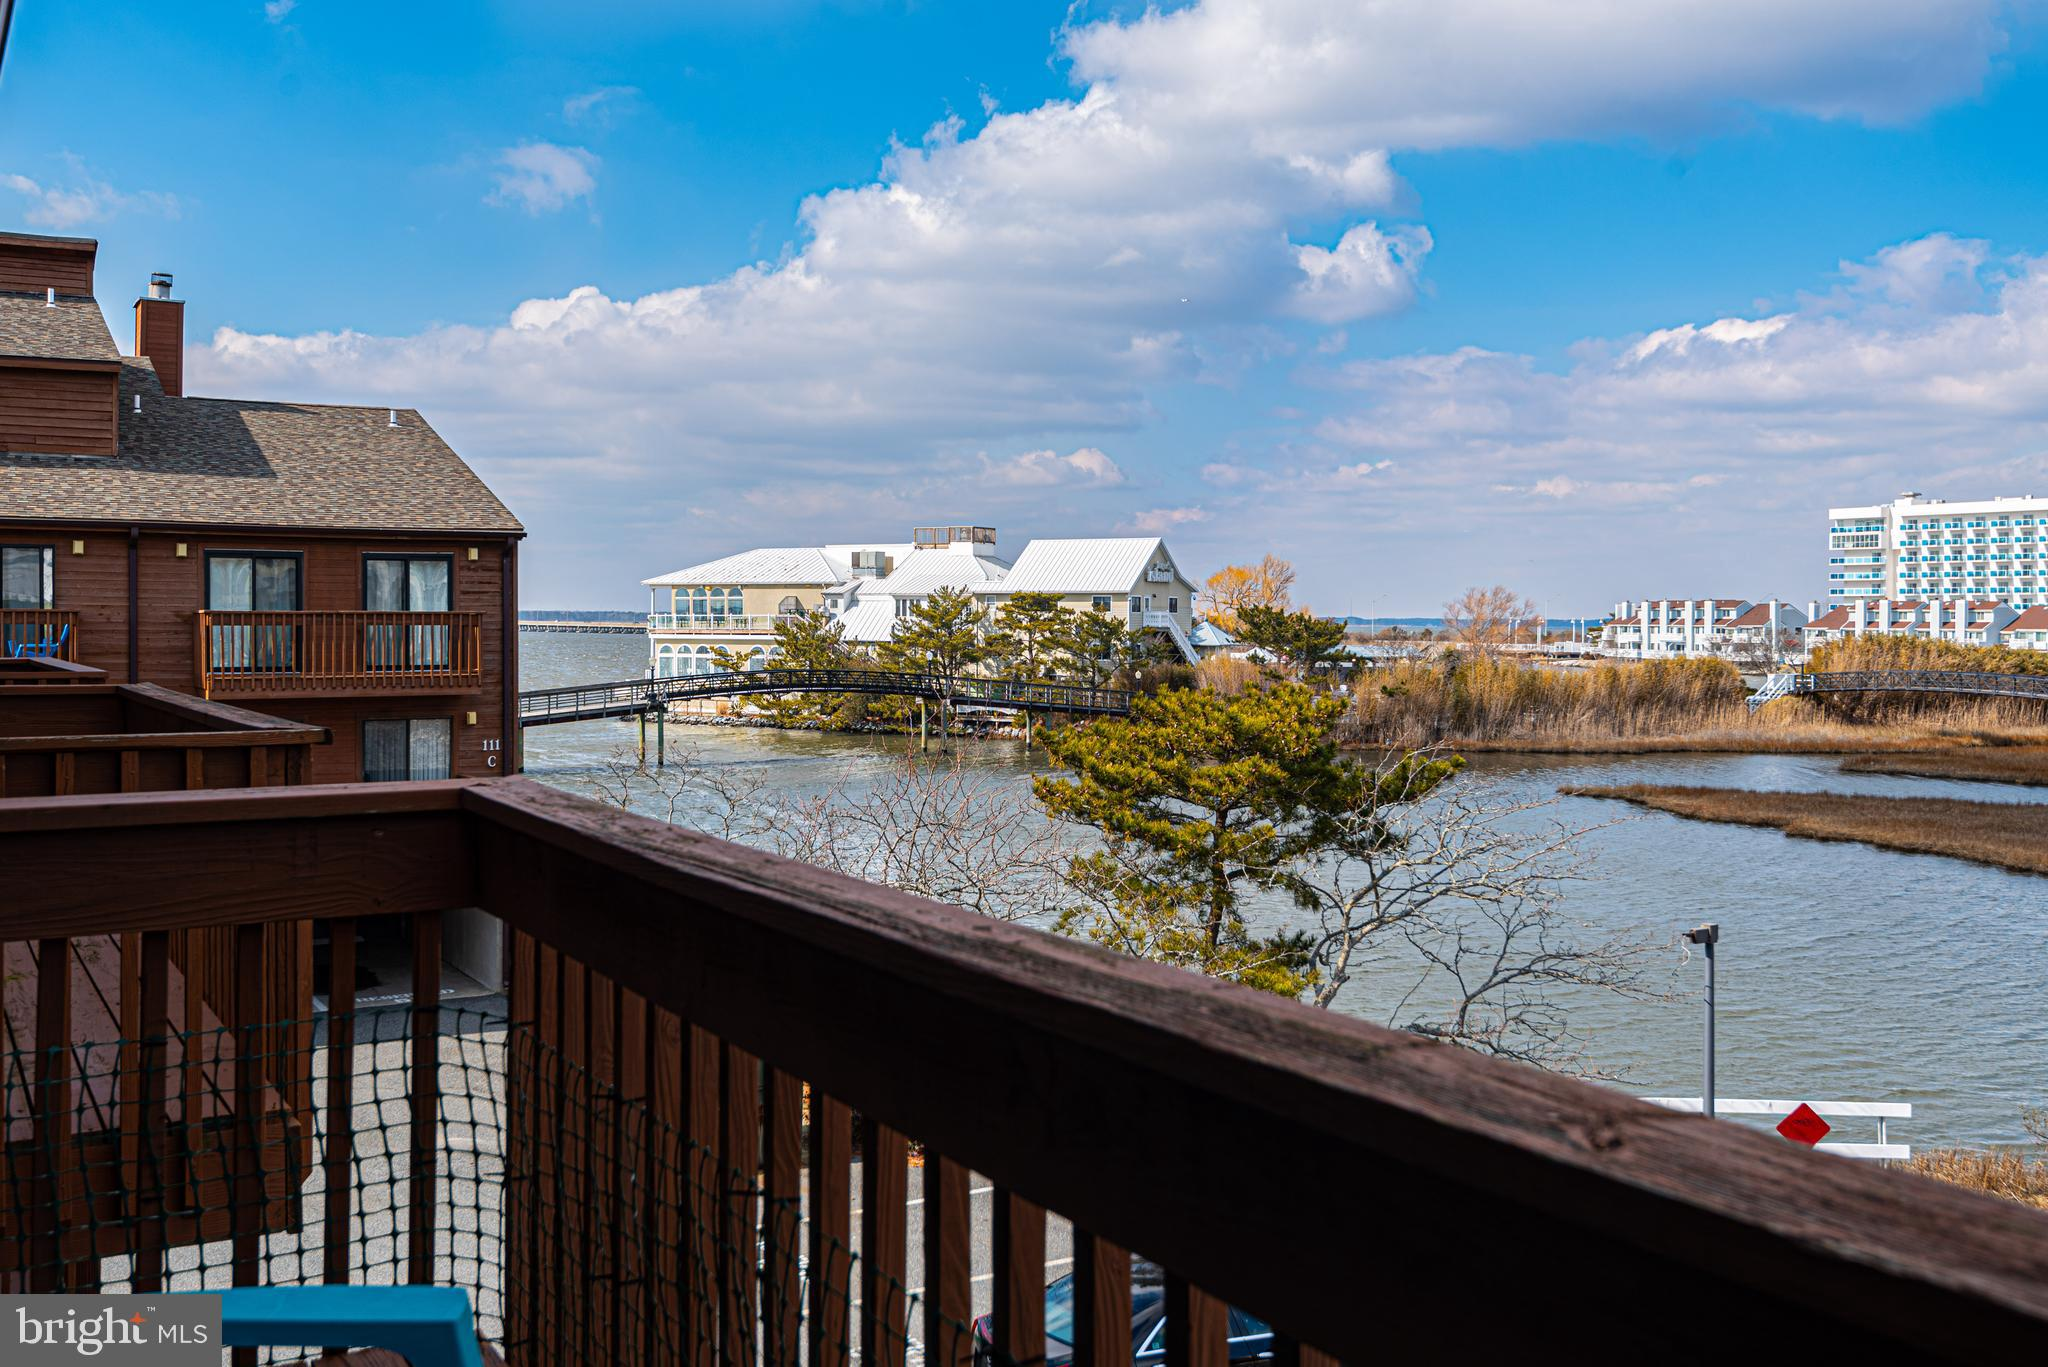 Do you want to be in Mid-town on the bay? Do you like Fagers? Do you like to kayak, paddle board and crab? Do you want a pool and views? Well then, come see this 2nd floor 2 bed/2 bath condo with views of bay. Two balconies, one facing south and one north. The owners have loved it and made many memories. It's ready for a new owner to enjoy. There's a stacked laundry closet, walk-in closet and storage closets. Also, it offers newer sliders and hot water heater. Sunset Landing has a wonderful pool and this condo has covered assigned parking and an outside storage unit. You can stroll to Fagers for sunsets or watch from your balconies. Besides Fagers, you'll be close to so much mid-town has to offer - restaurants, entertainment (mini golf and bowling just blocks away), shopping, boat rentals and more. Plus it's a short block to the beach - This one will check all the boxes! All this and under $300,000! Make an appointment to visit and take advantage of this incredible opportunity. Resort condos going fast, so don't wait too long!